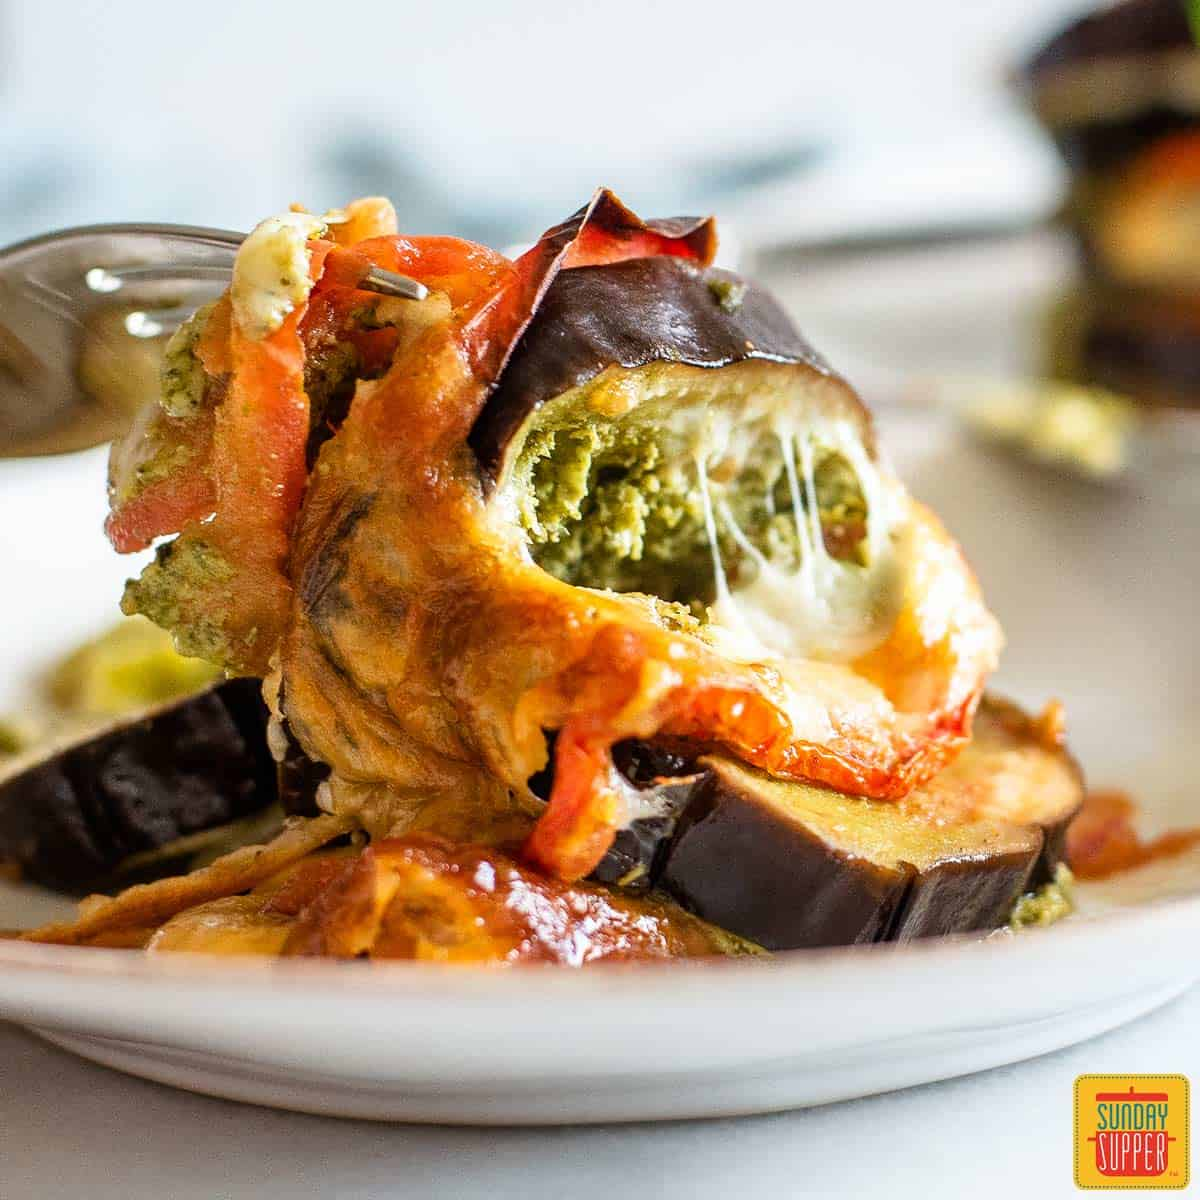 Digging into slices of caprese roasted eggplant recipe with a fork on a white plate